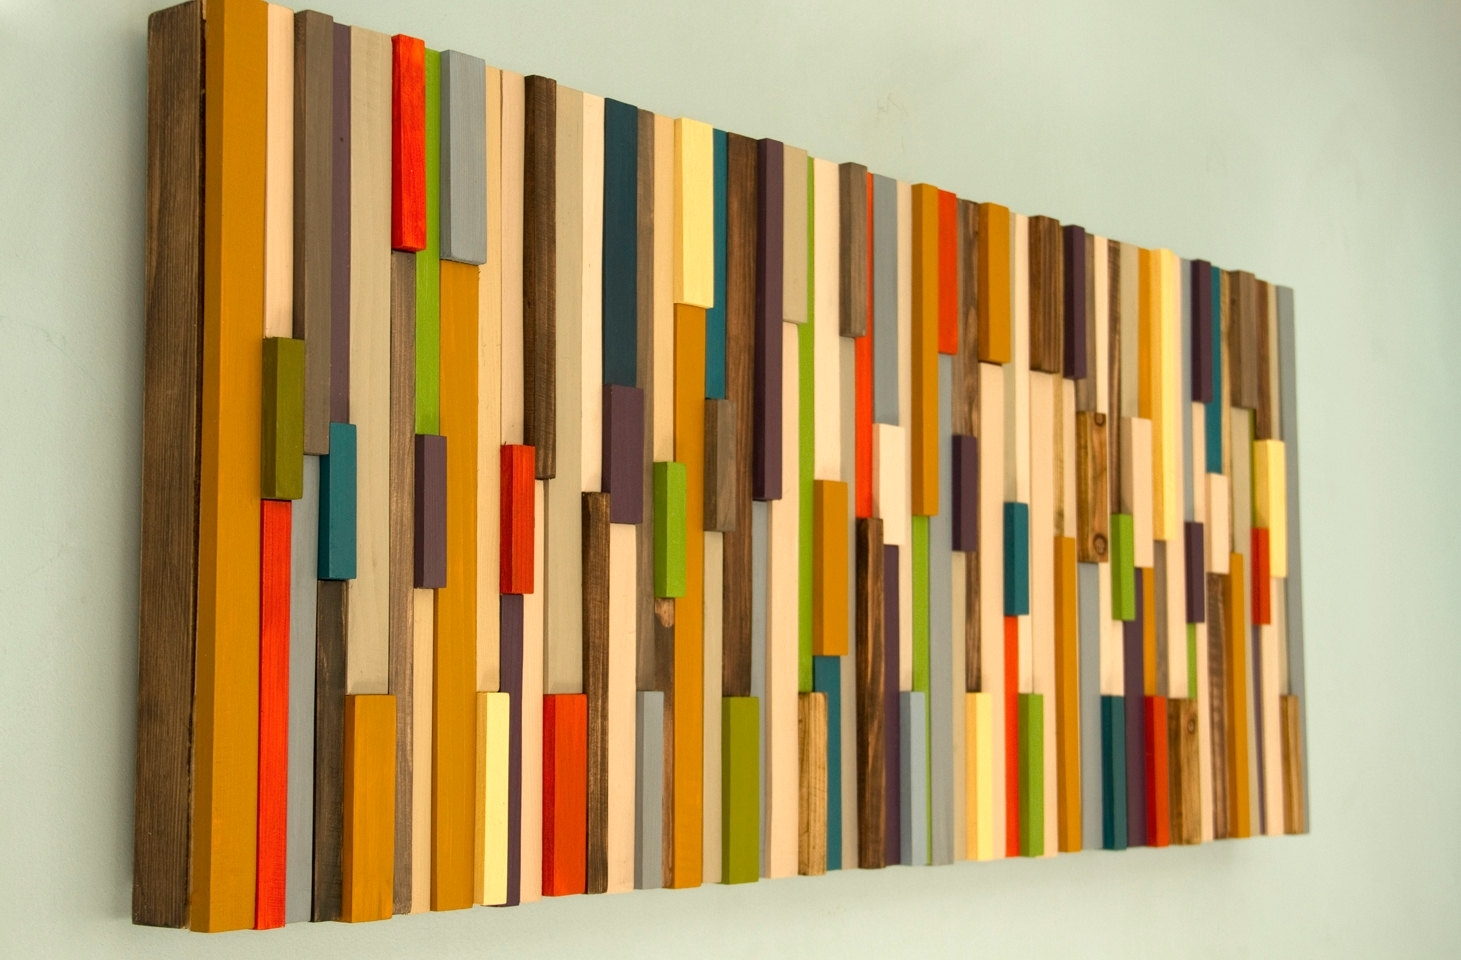 Modern Large Wall Art, Reclaimed Wood Art Sculpture, Painted Wood With Regard To Most Recently Released Wood Art Wall (Gallery 13 of 15)